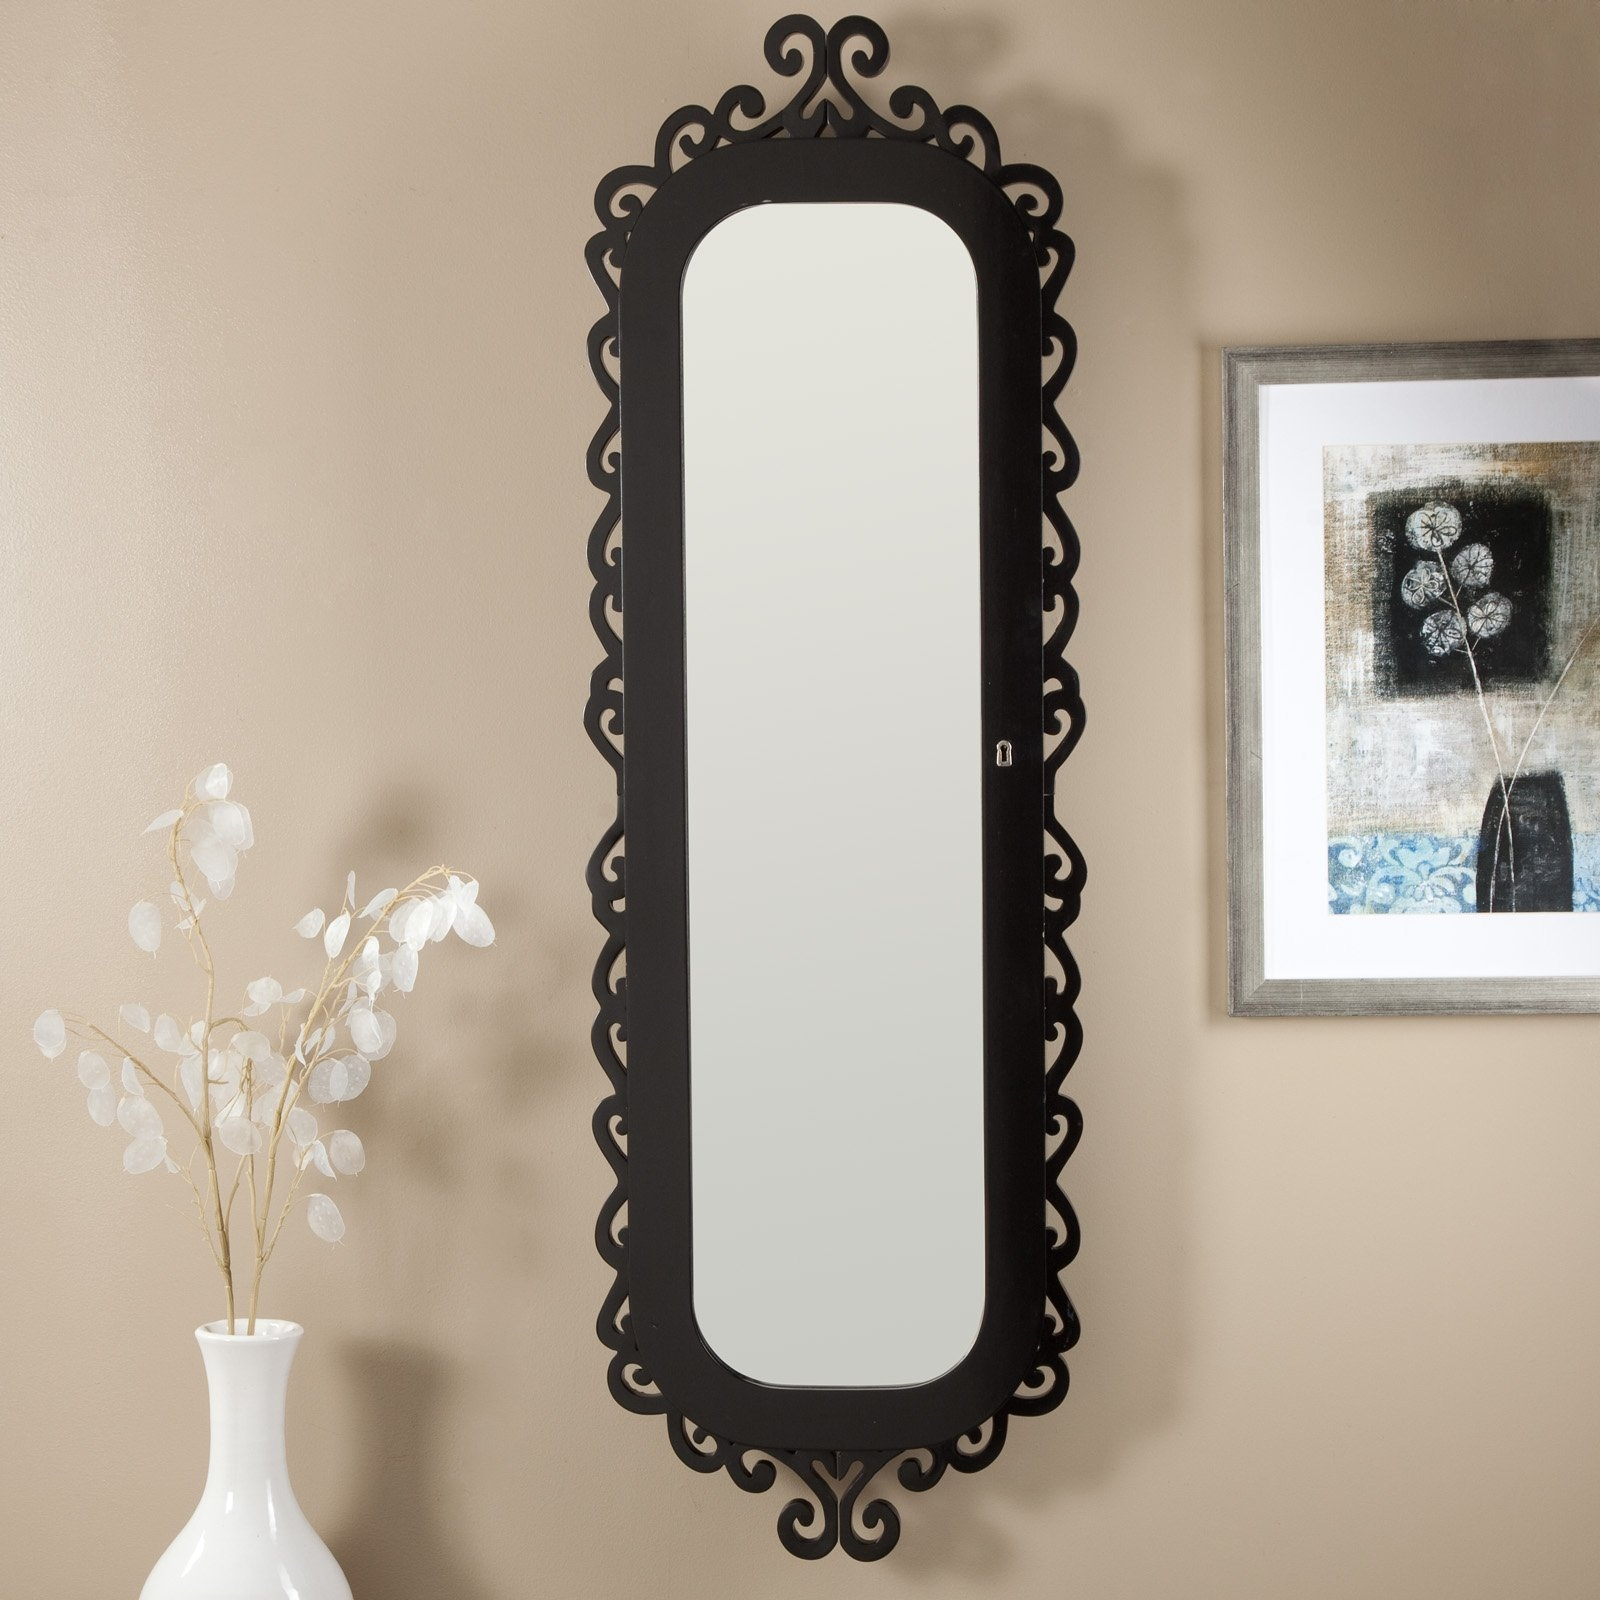 Cheap Wall Mirrors Decorative Inarace Throughout Cheap Mirrors (Image 10 of 15)